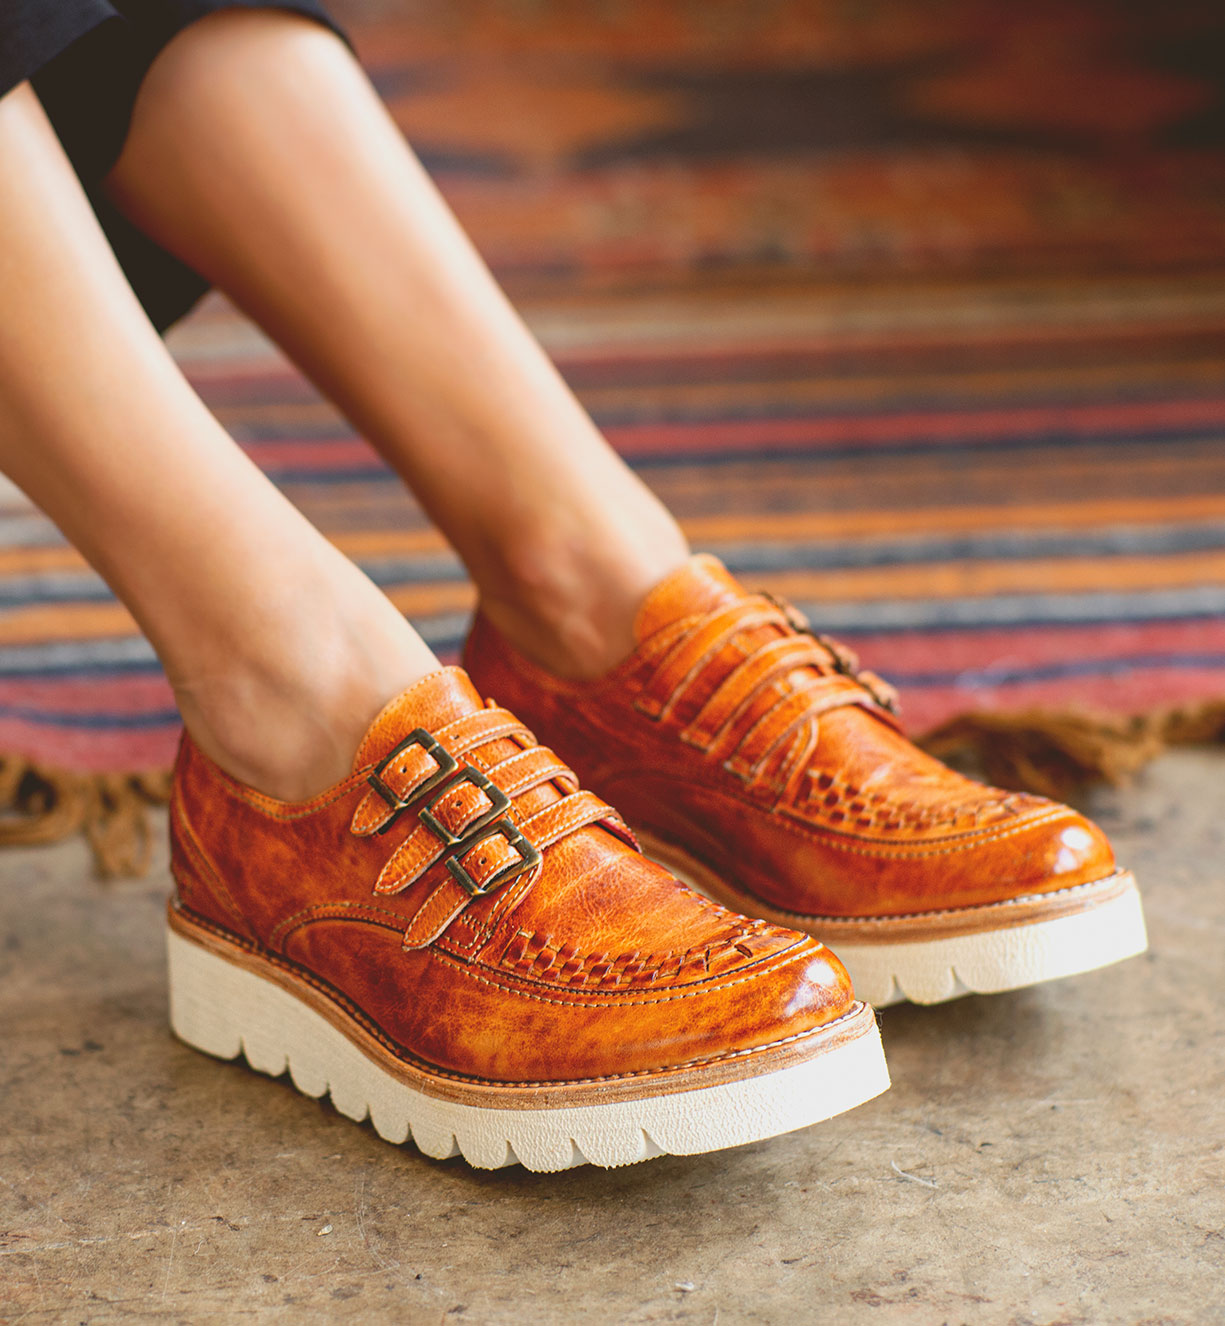 Woman's foot wearing tan leather paltform shoes